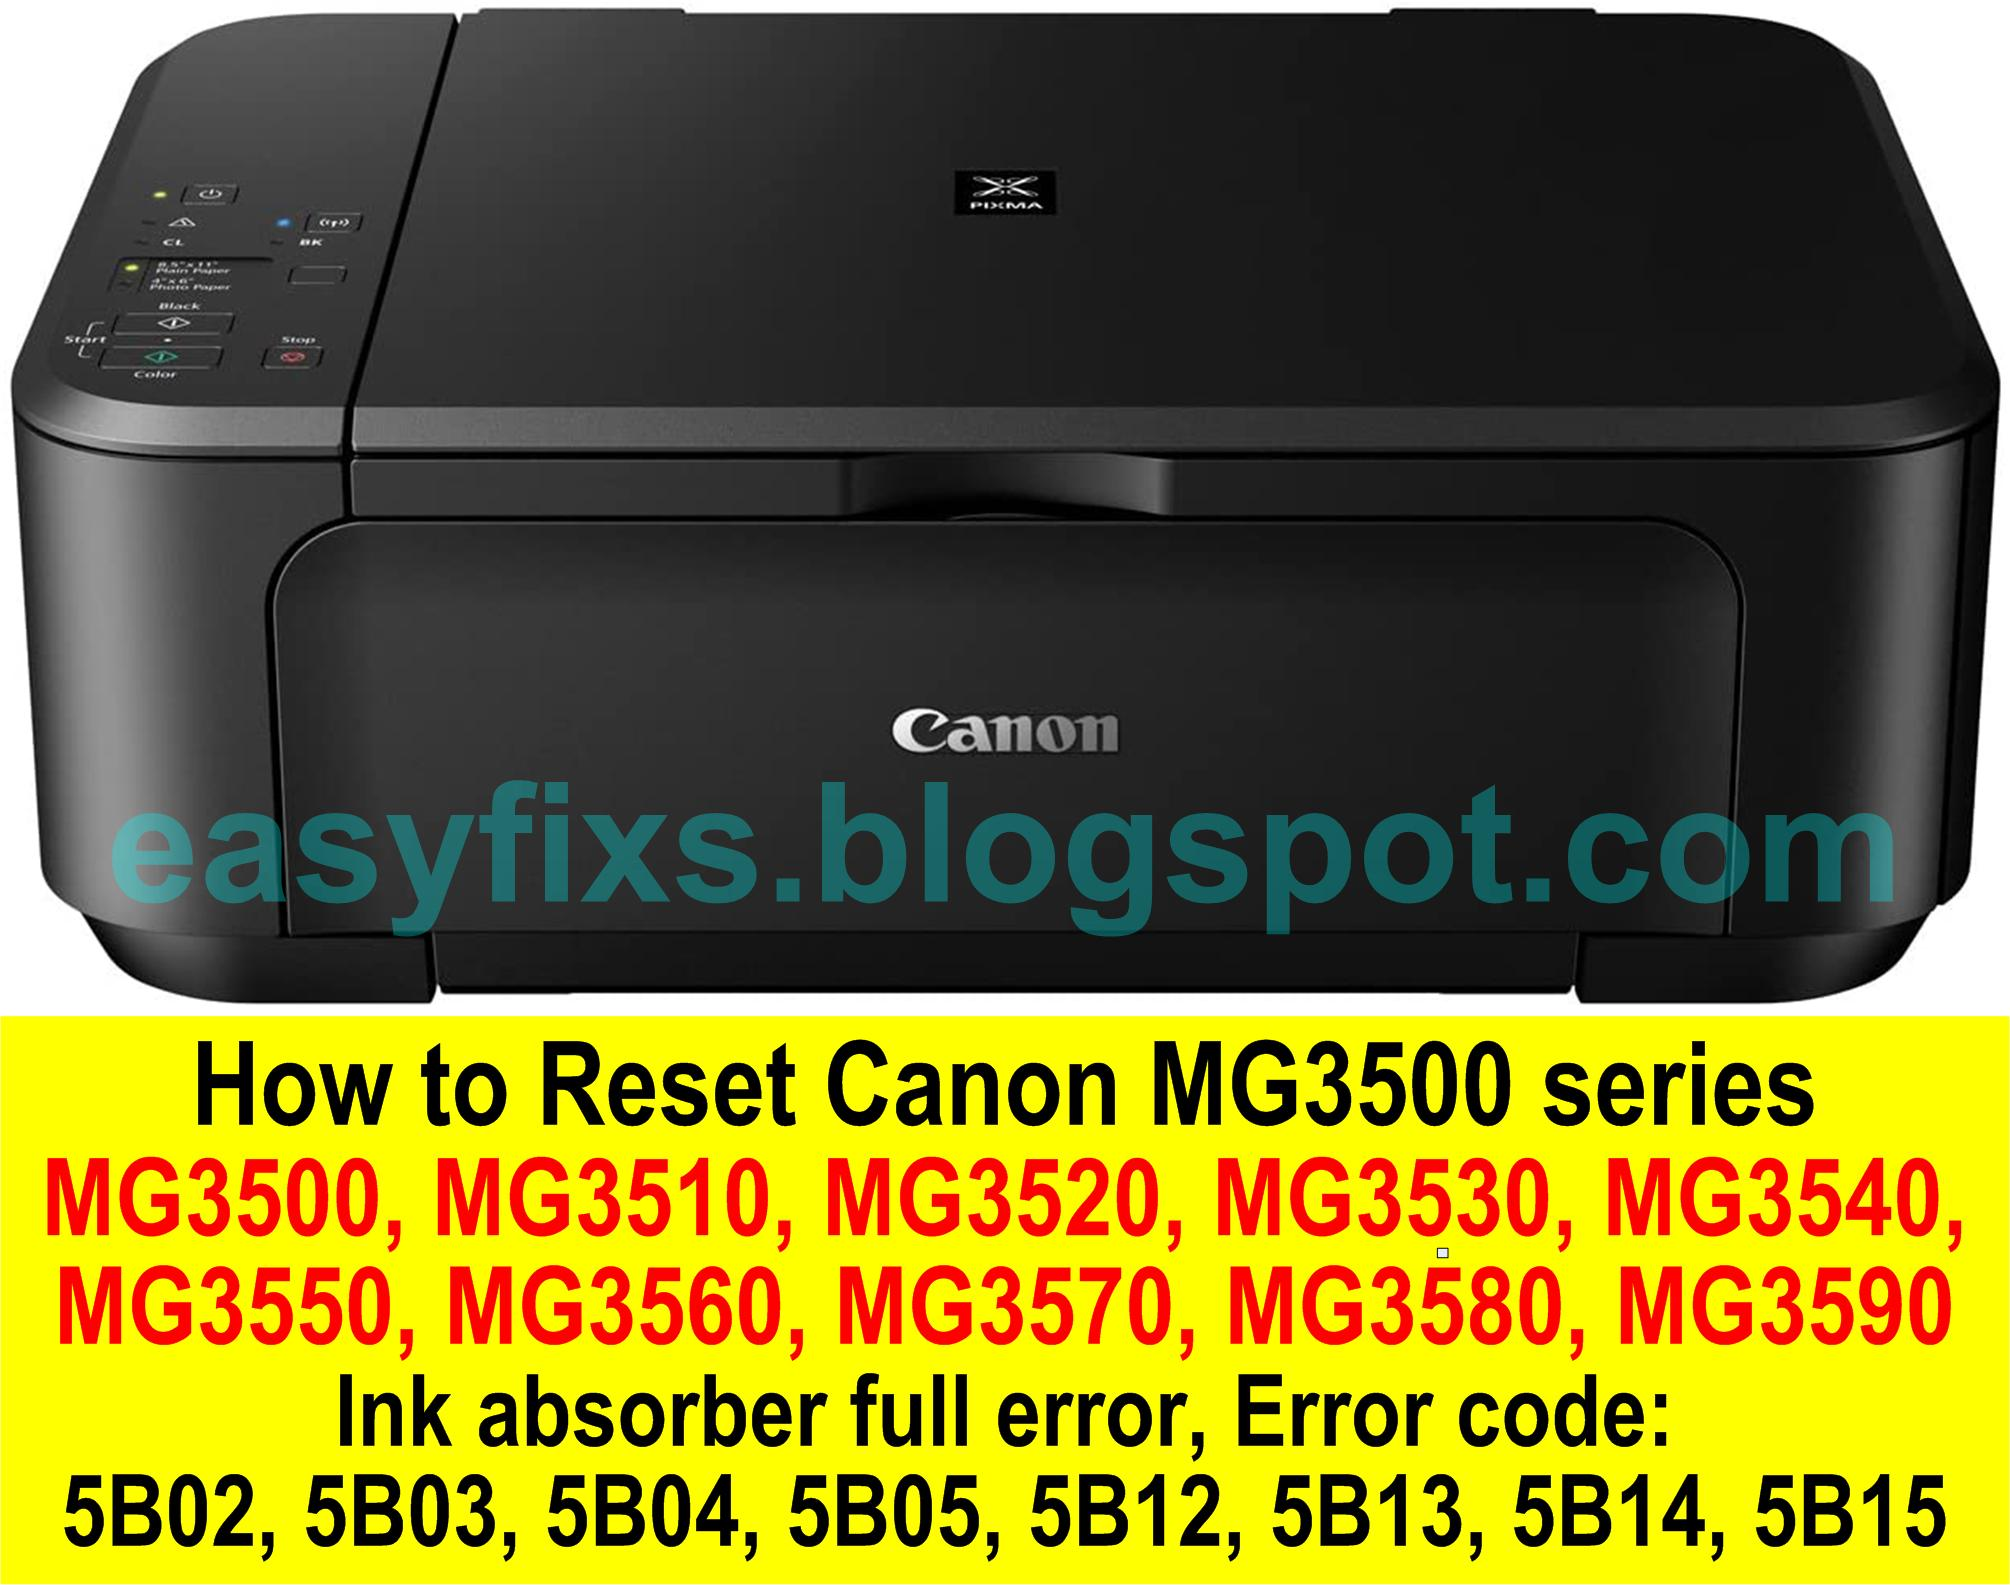 easyFIXS How to Reset Canon MG20 series Ink absorber full error ...